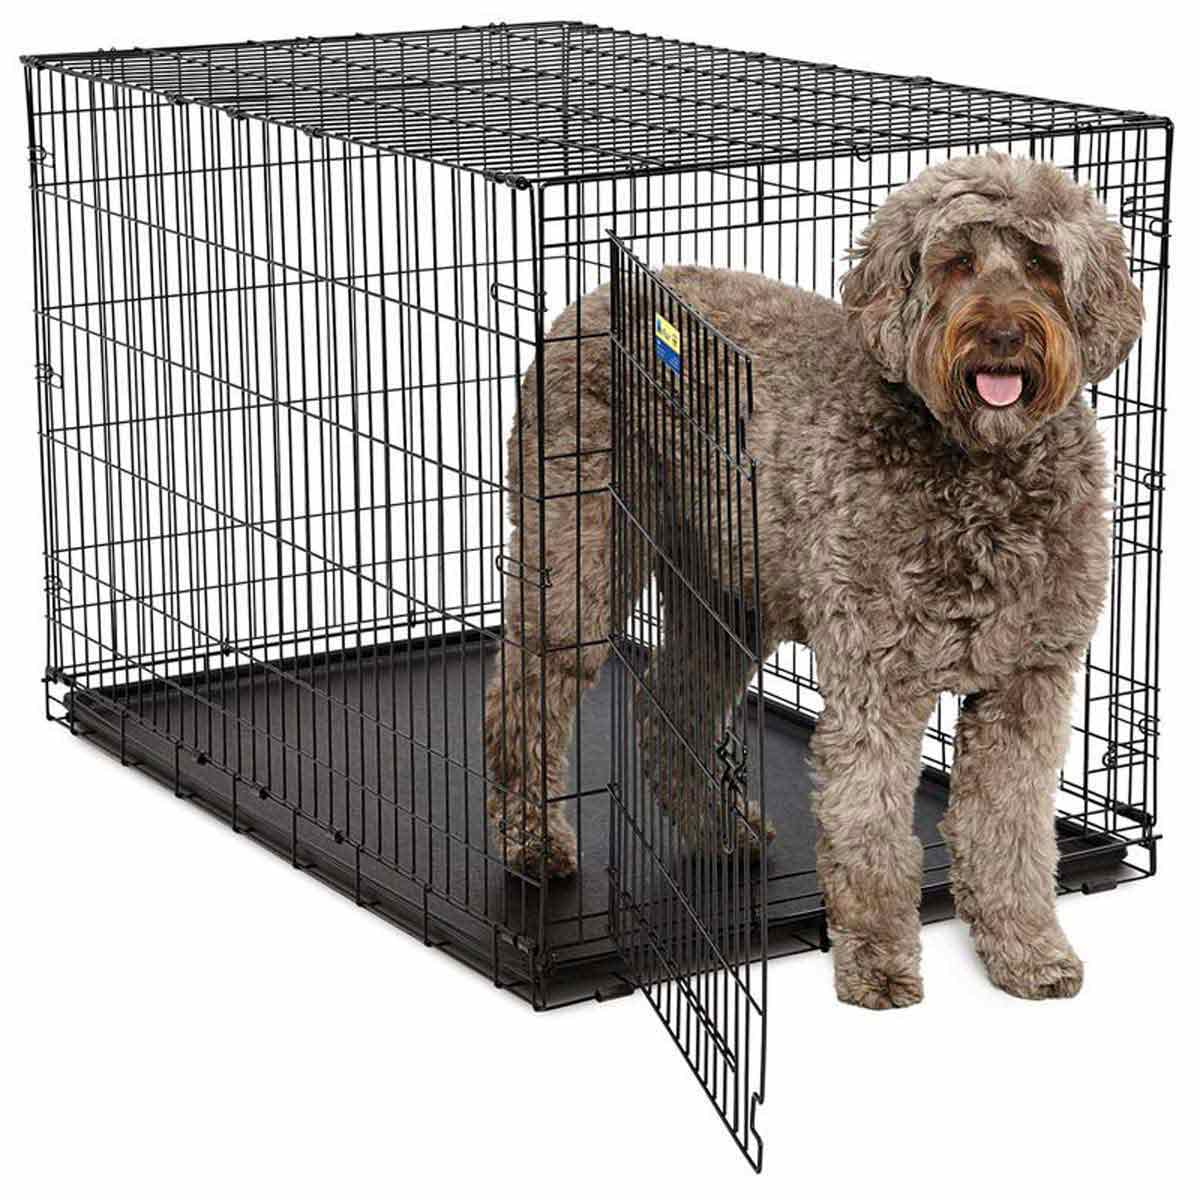 Midwest ConTour Single Door Crate for Medium Dogs - 48 inches by 30 inches by 32 inches